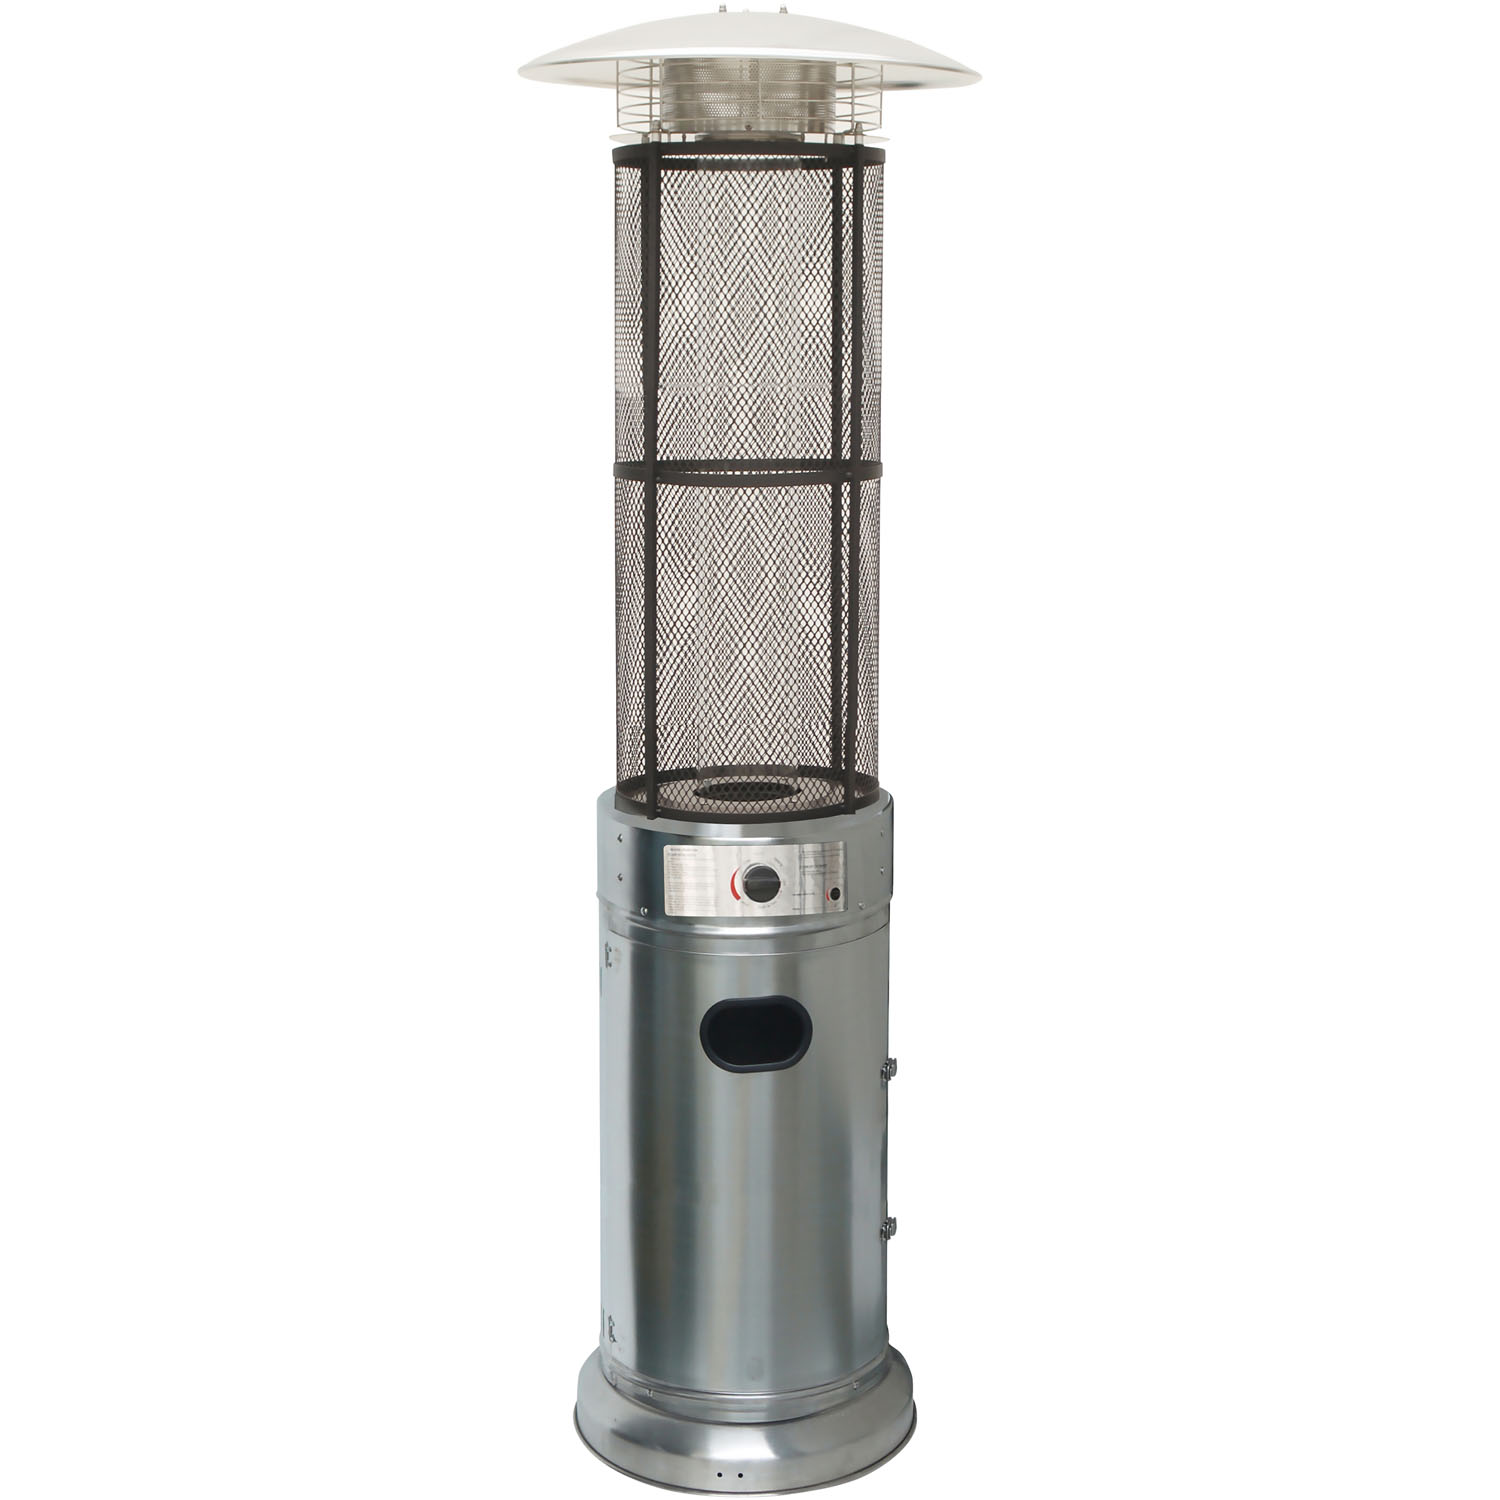 Hanover 6-Ft. 34,000 BTU Cylinder Patio Heater with Glass Flame Display in Stainless